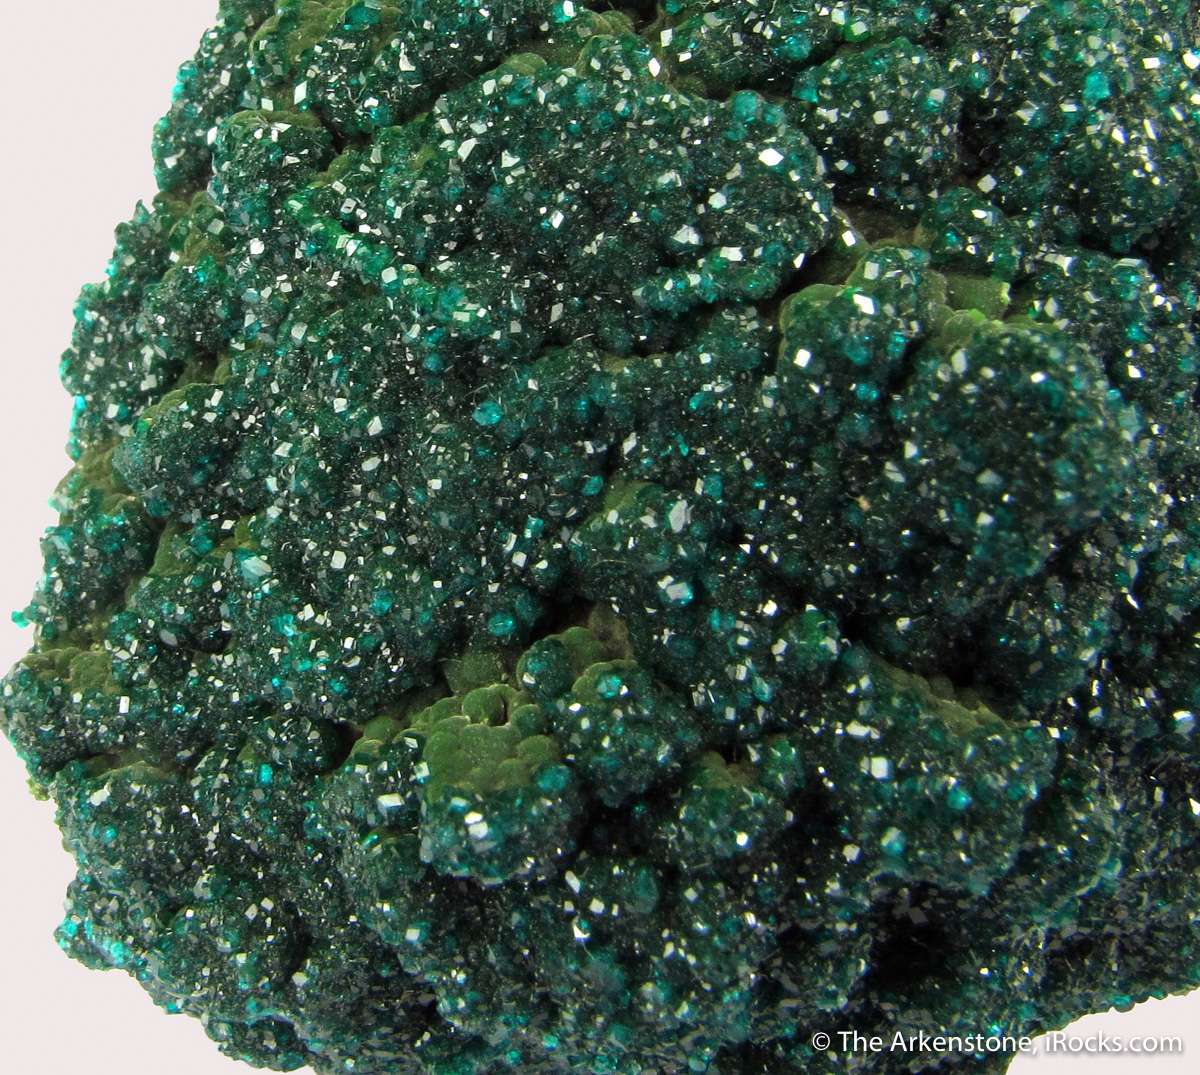 Beautiful deep green crust mm size Dioptase crystals matrix